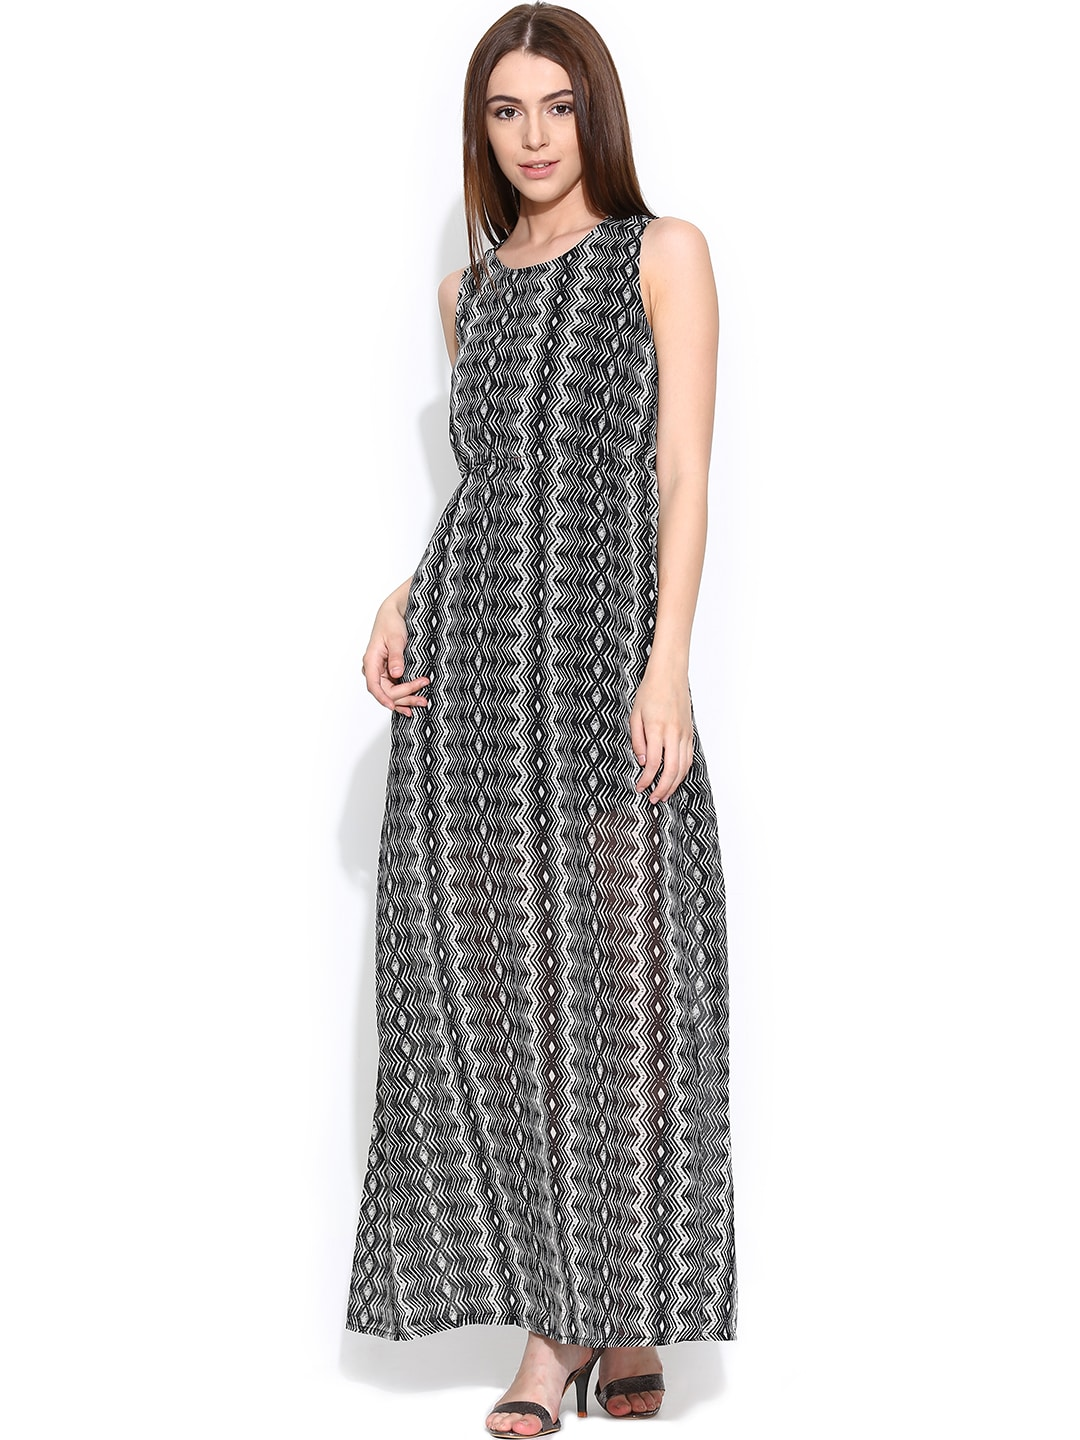 ONLY Black & Off-White Printed Maxi Dress